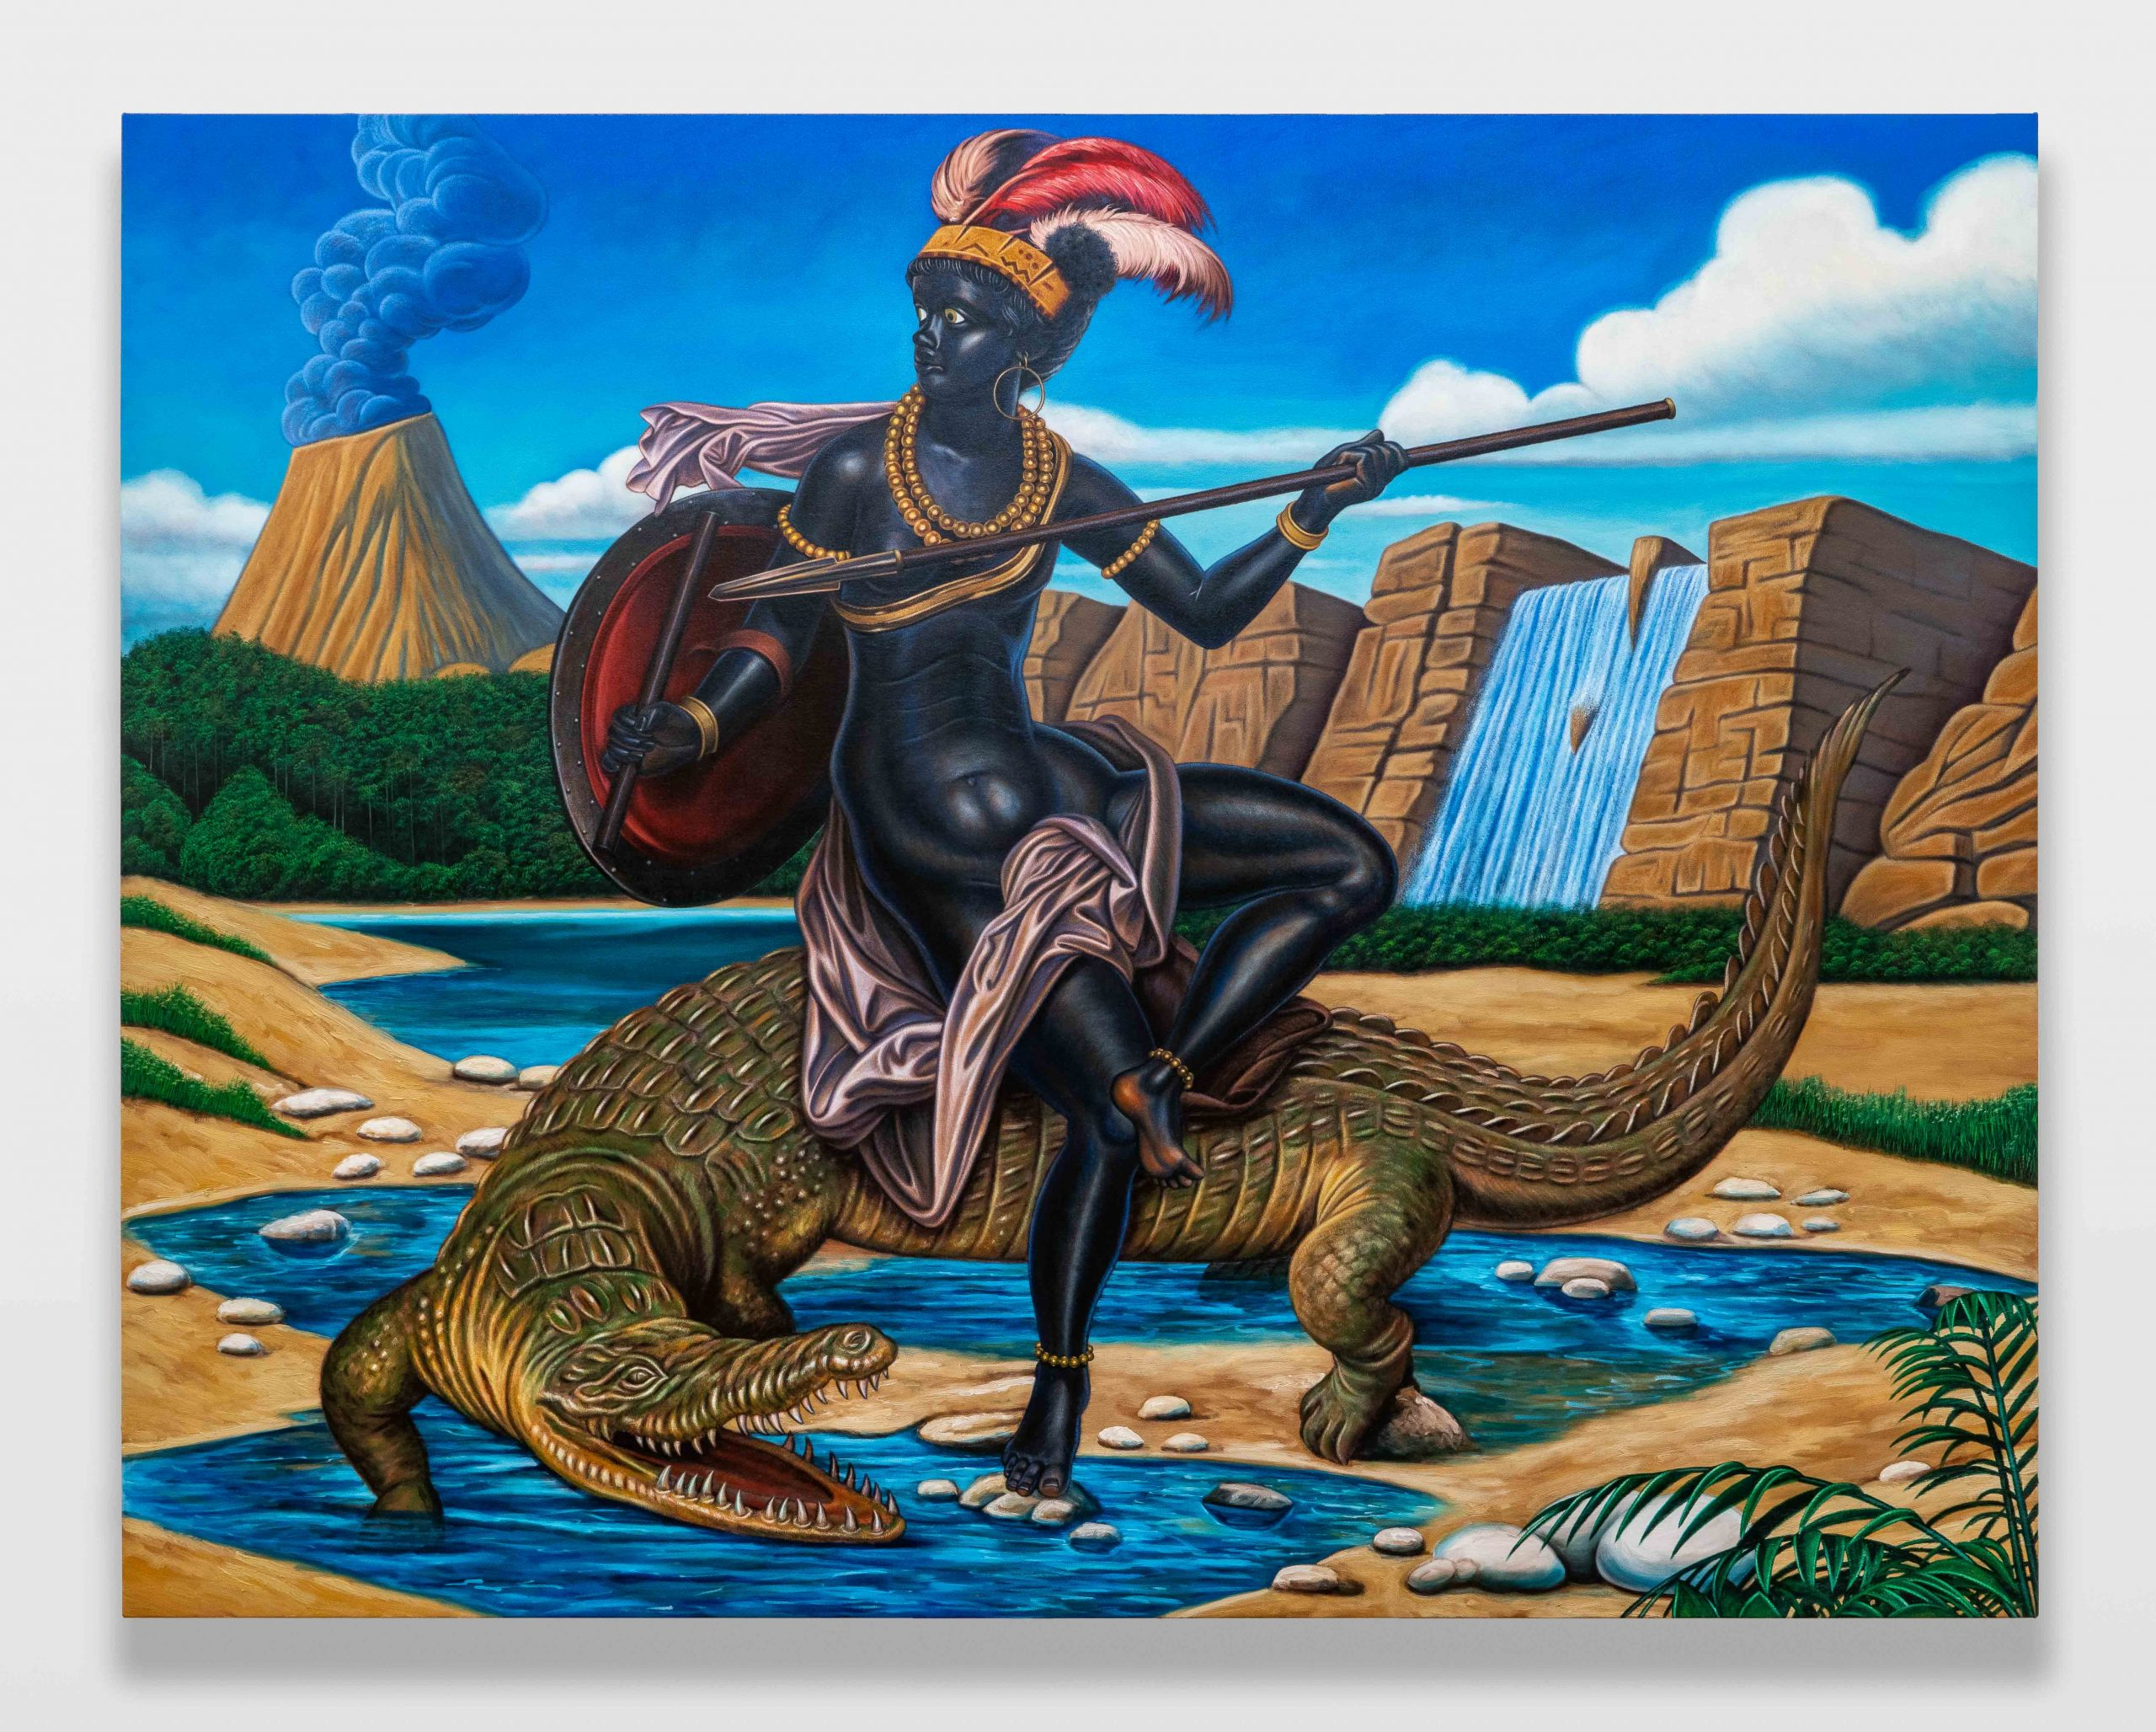 Kajahl Huntress In Oasis (Astride A Crocodile), 2020 oil on canvas 66 x 84 in. Courtesy of the artist and Monique Meloche Gallery, Chicago.